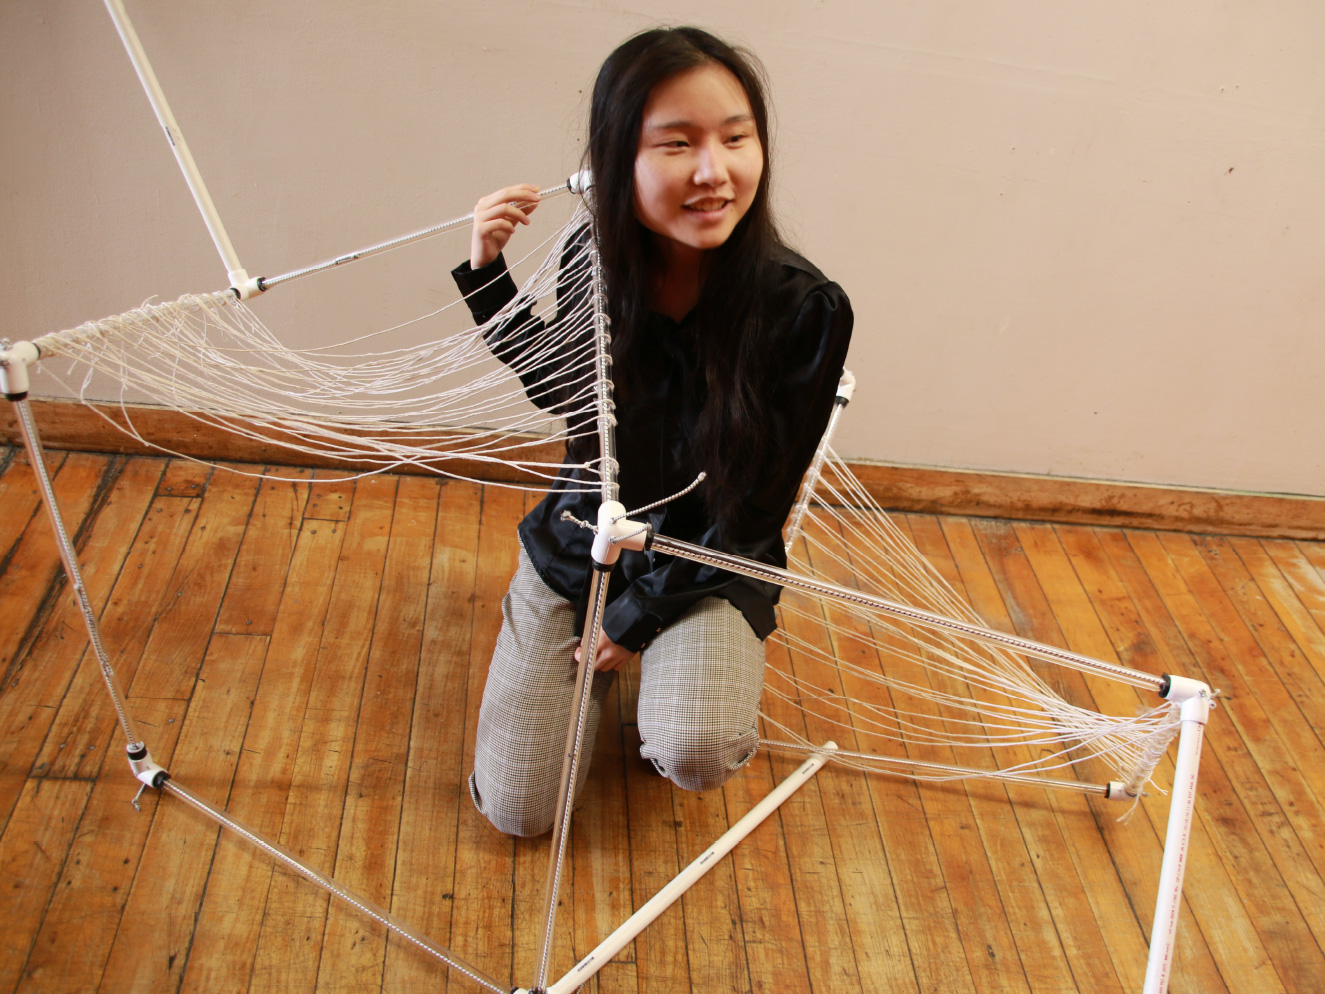 Performative Object designed by Samantha Zhixing Xia